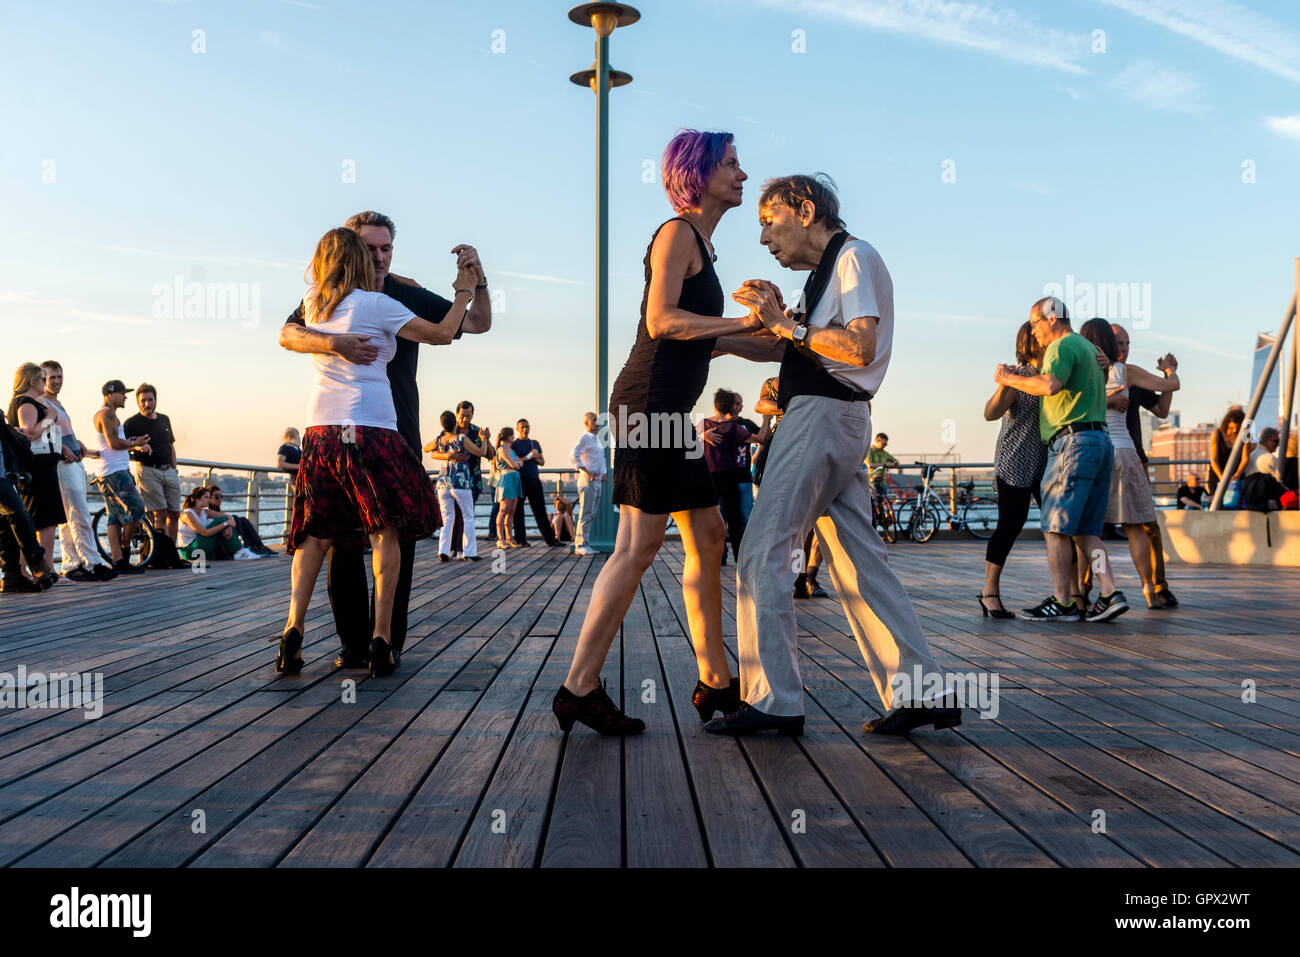 Time To Dance Stock Photos & Time To Dance Stock Images - Alamy